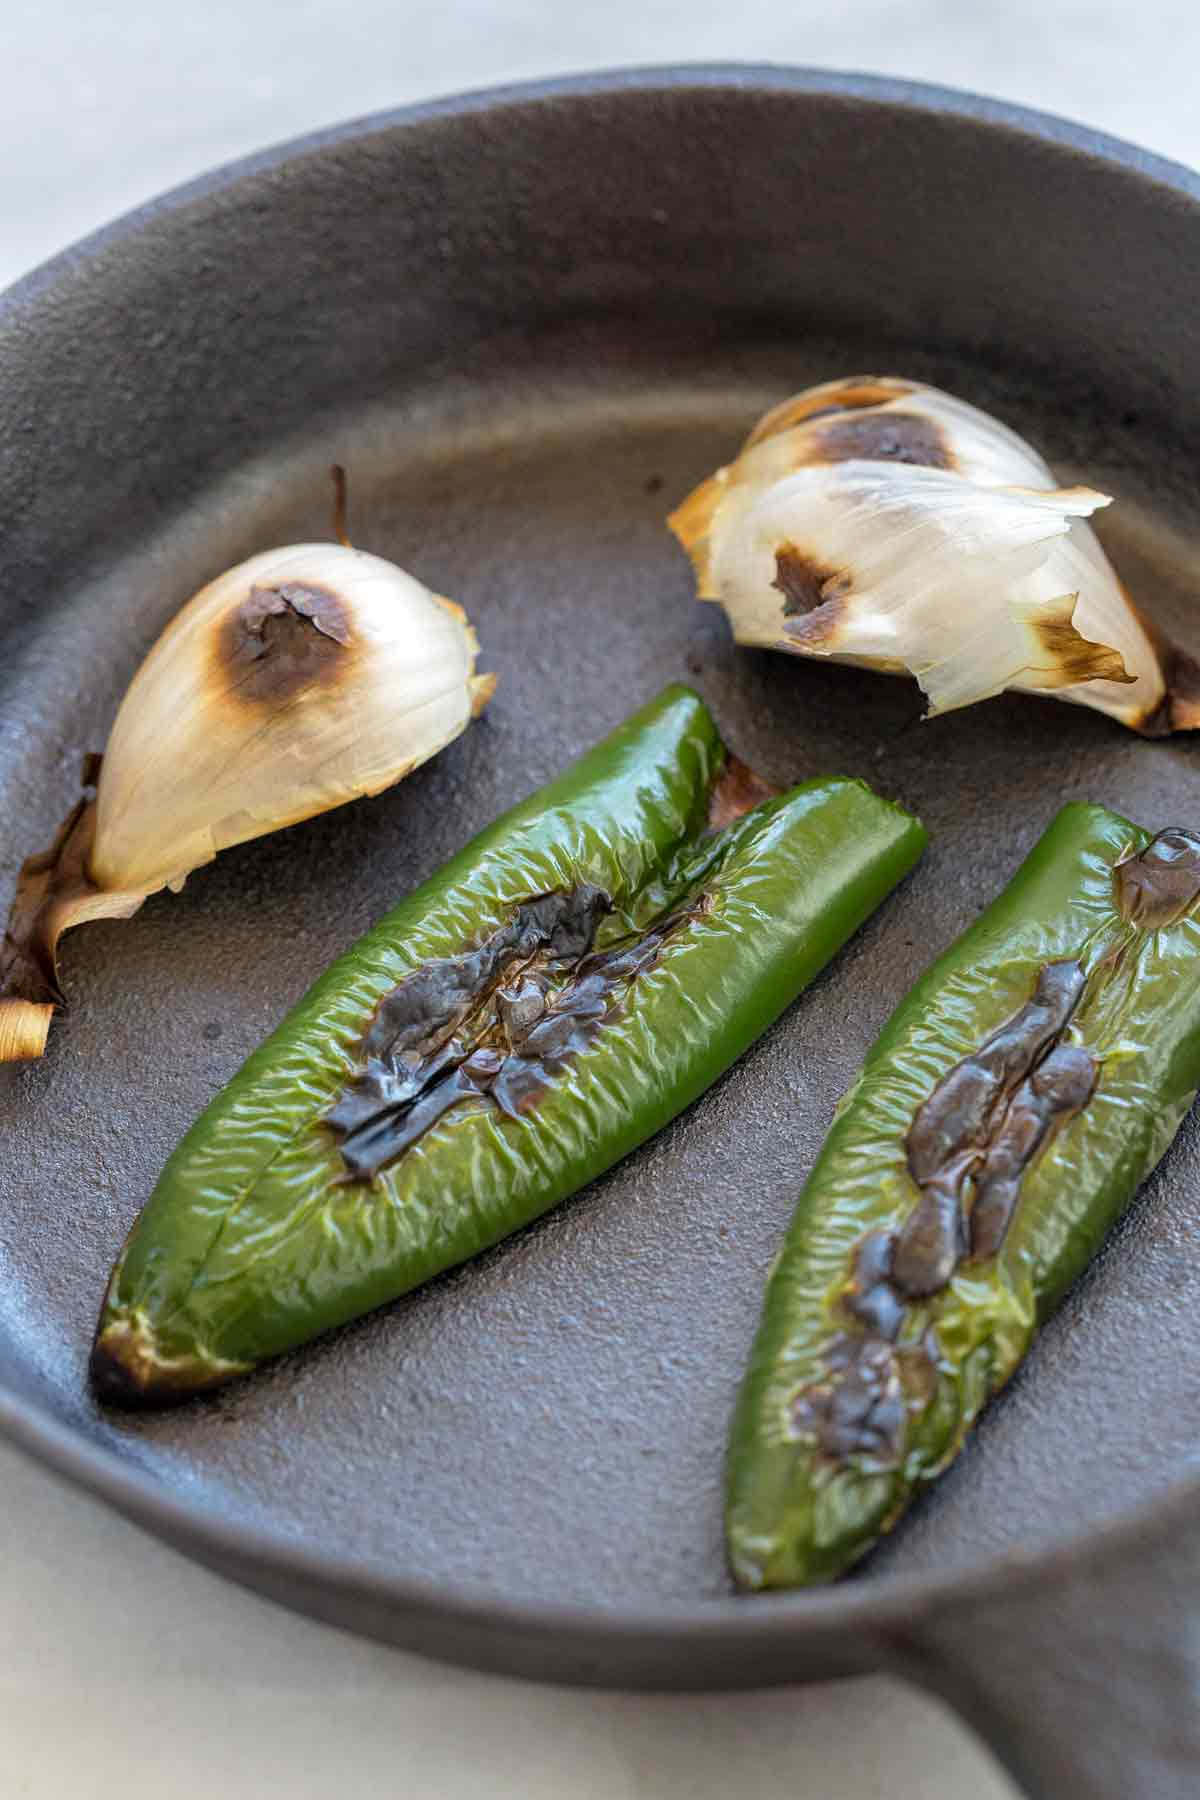 Roasting slices  of jalapeno and unpeeled garlic cloves in a small pan